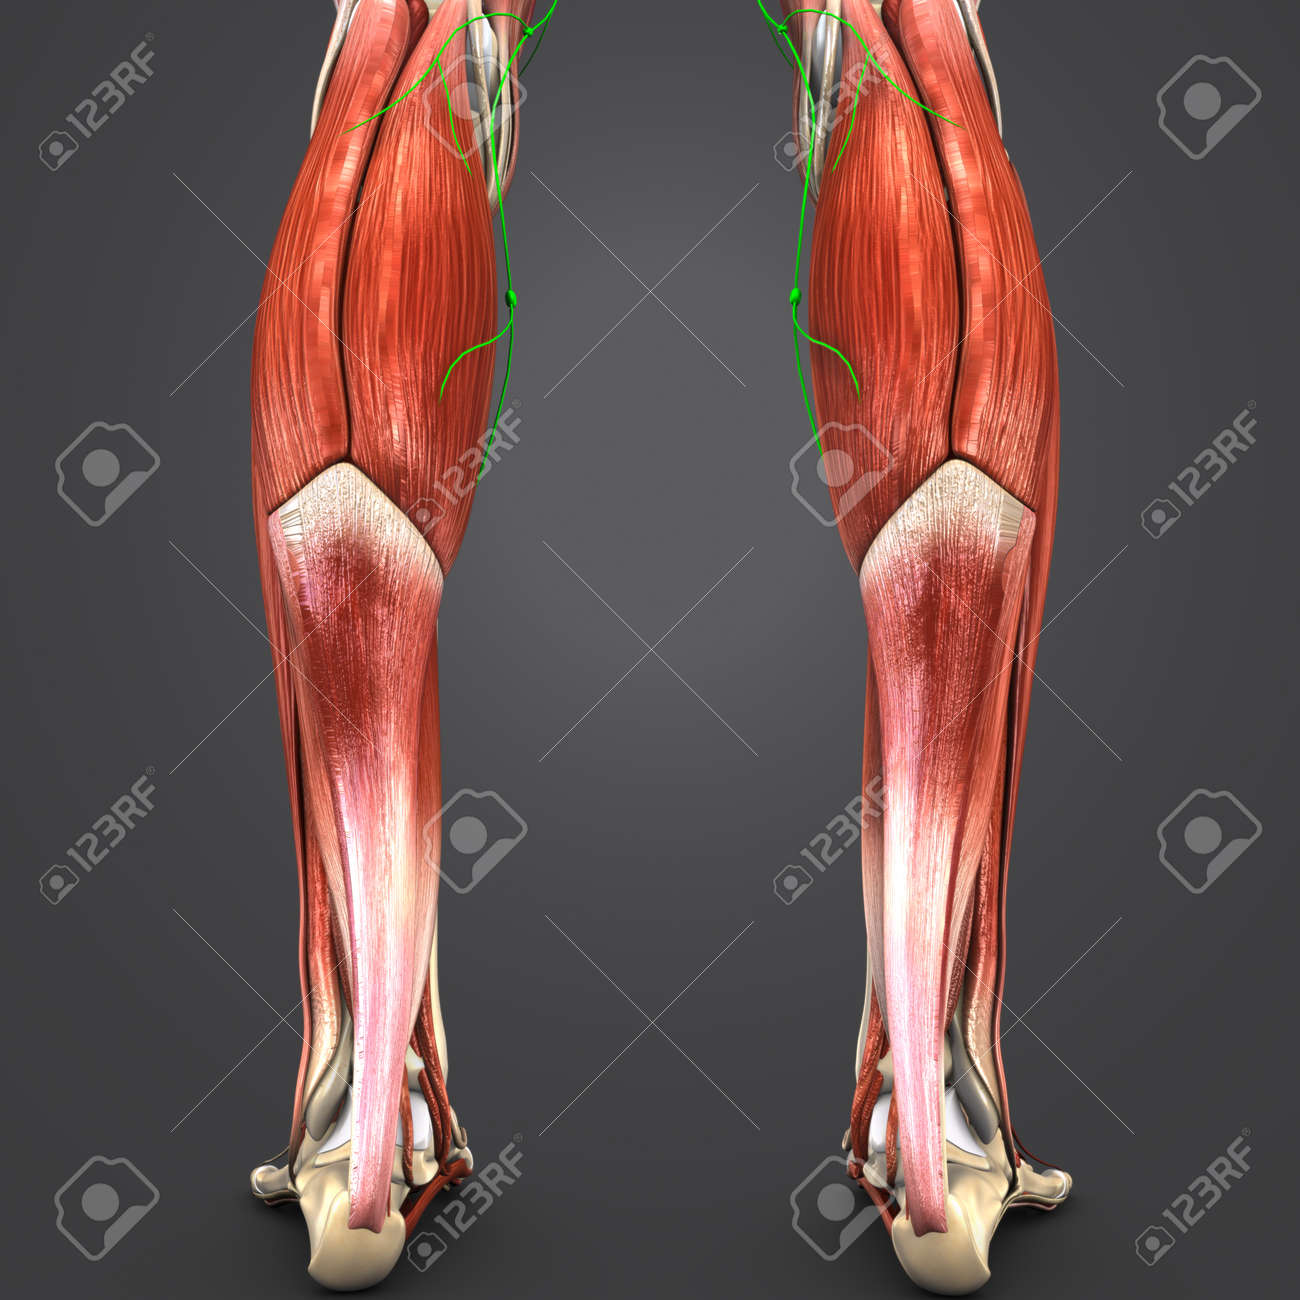 Muscles Of Leg With Lymph Nodes Posterior View Stock Photo Picture